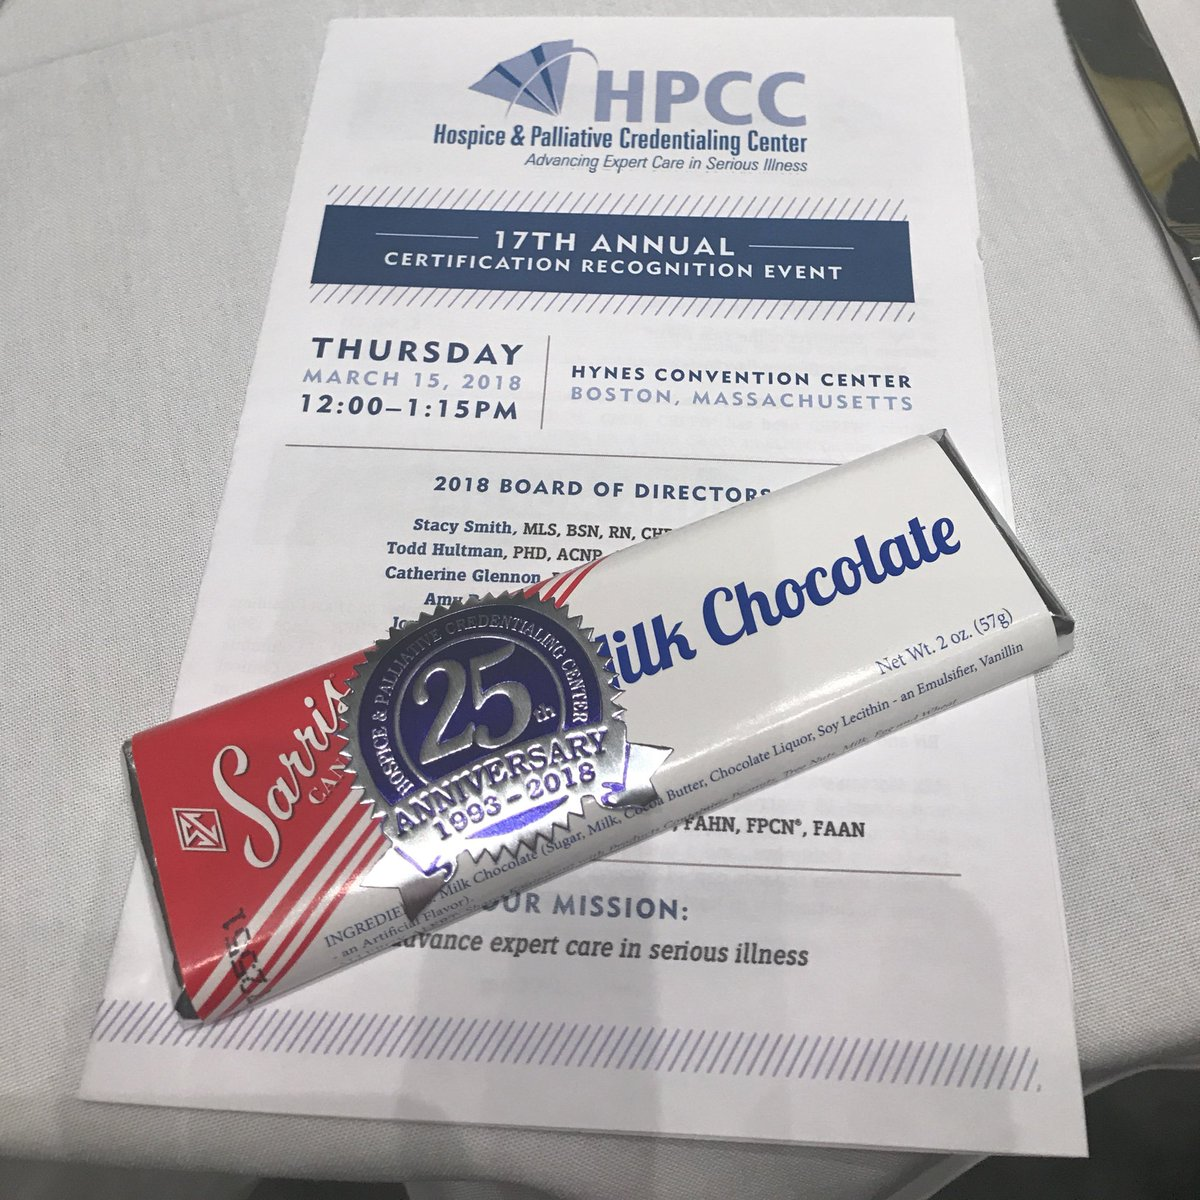 Hpm Chat On Twitter Chocolate Hpcc Certification Lunch